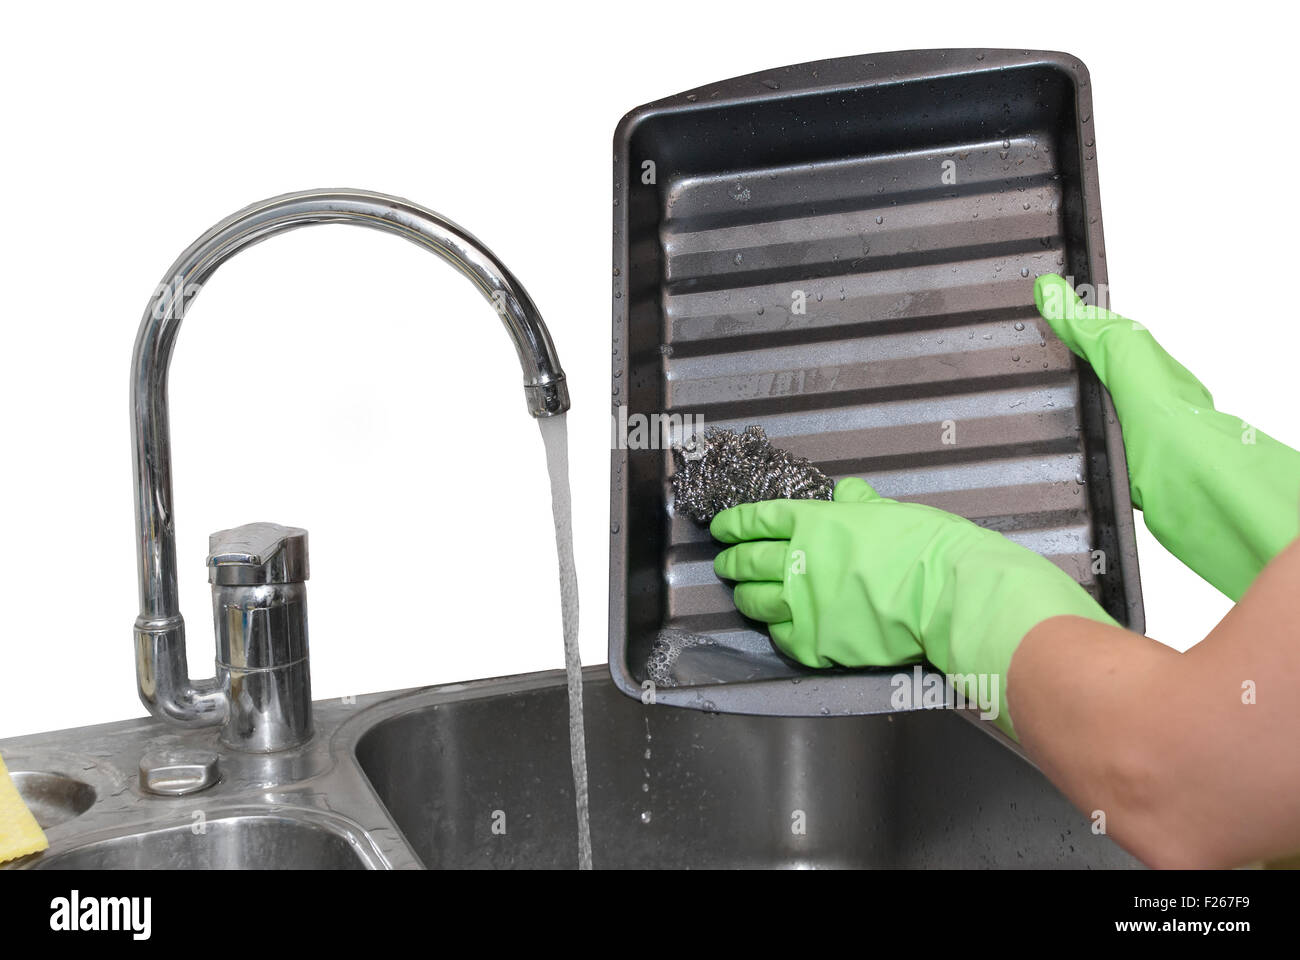 cleaning dripping pan with scraper - Stock Image